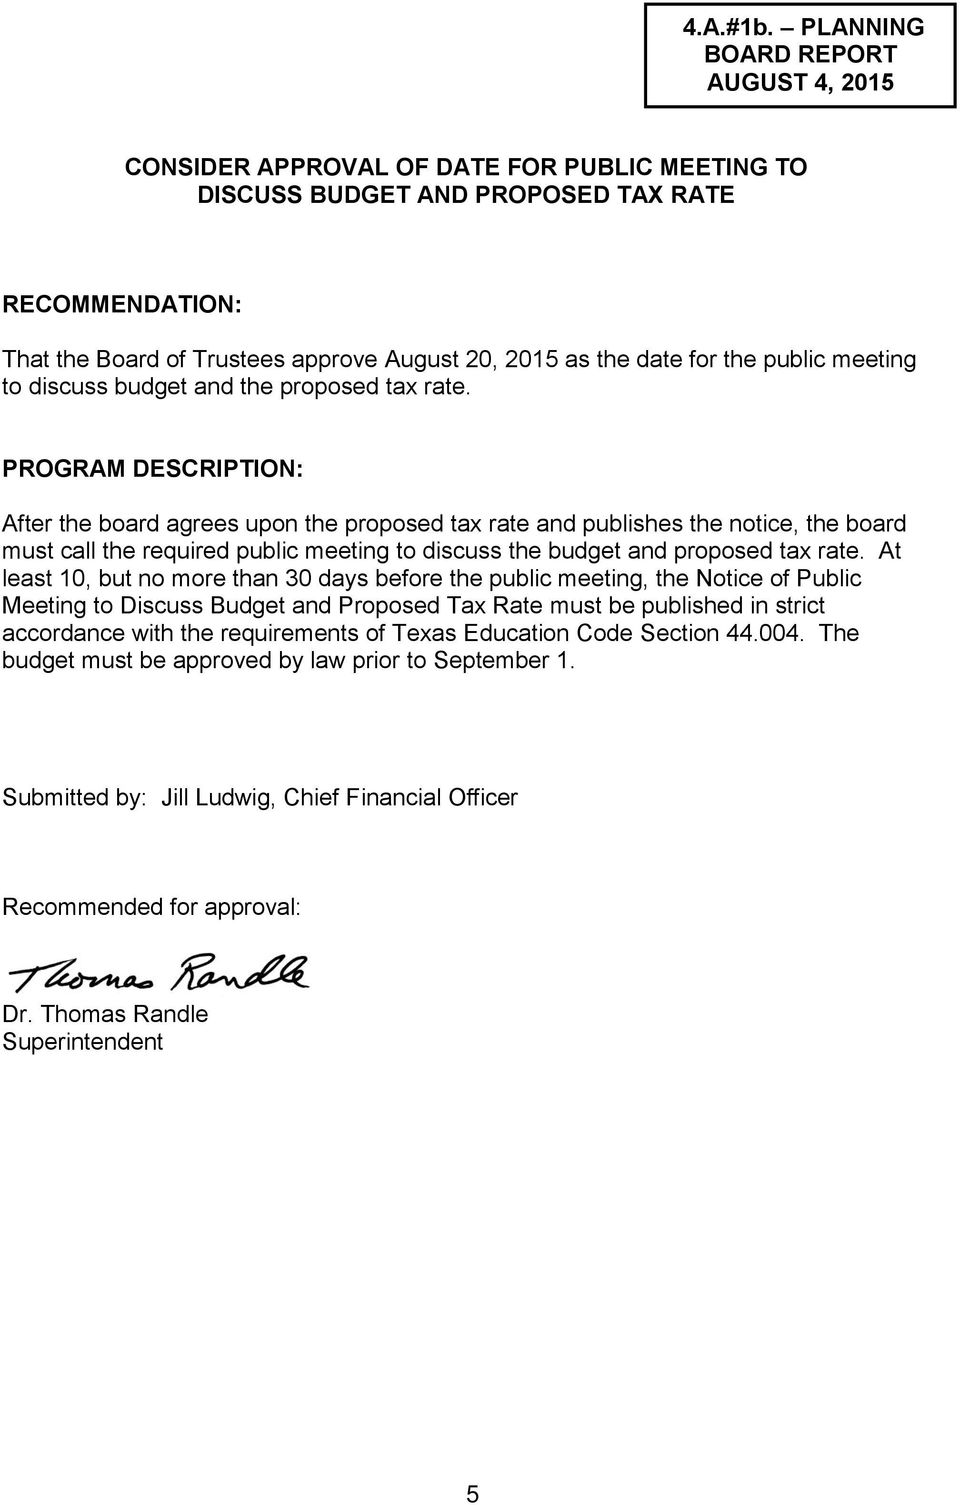 date for the public meeting to discuss budget and the proposed tax rate.